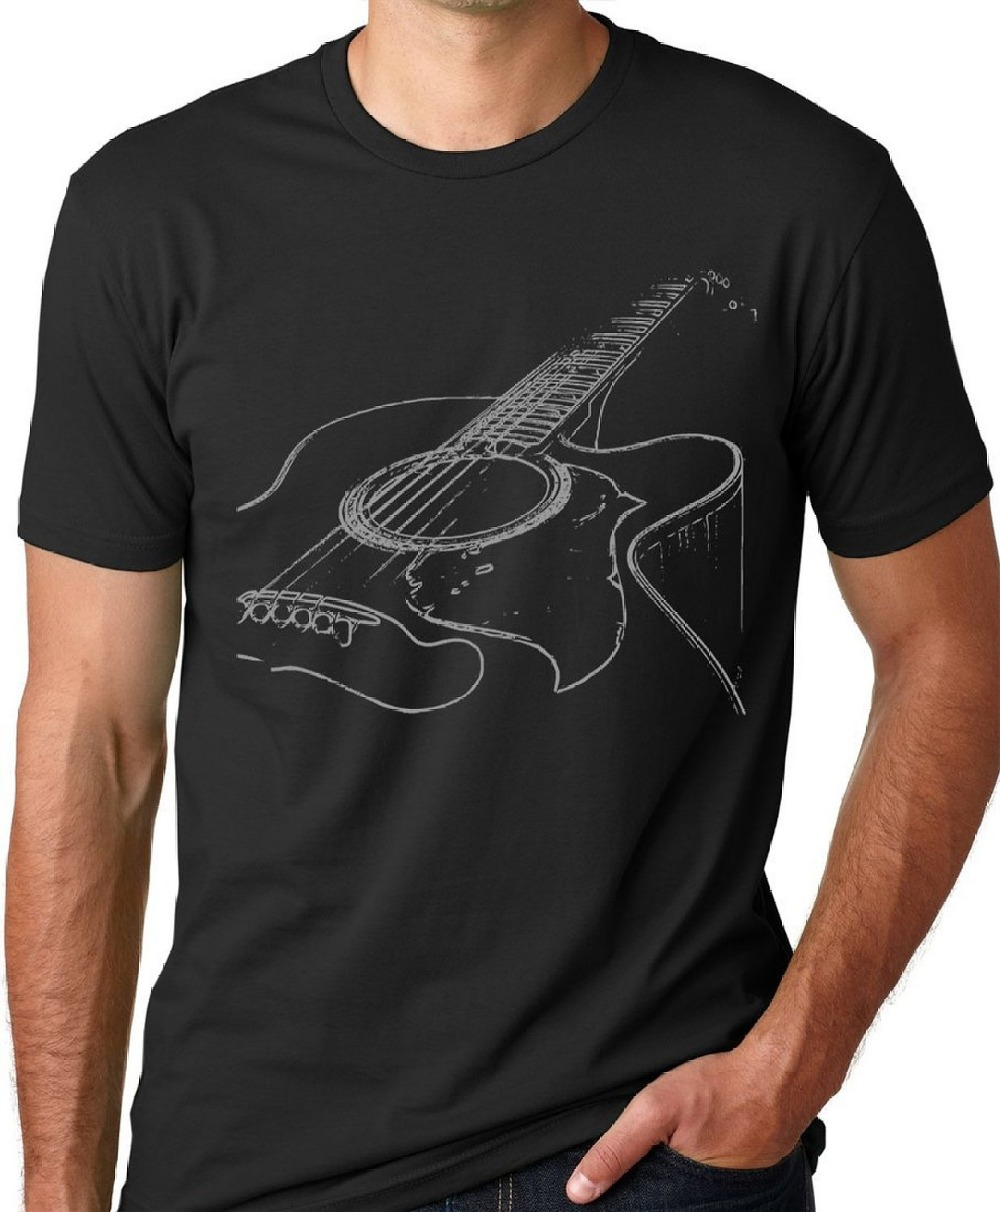 Free shipping 2017 Acoustic Guitar T-shirt Cool Musician Print Summer Tops Tees Plus Size